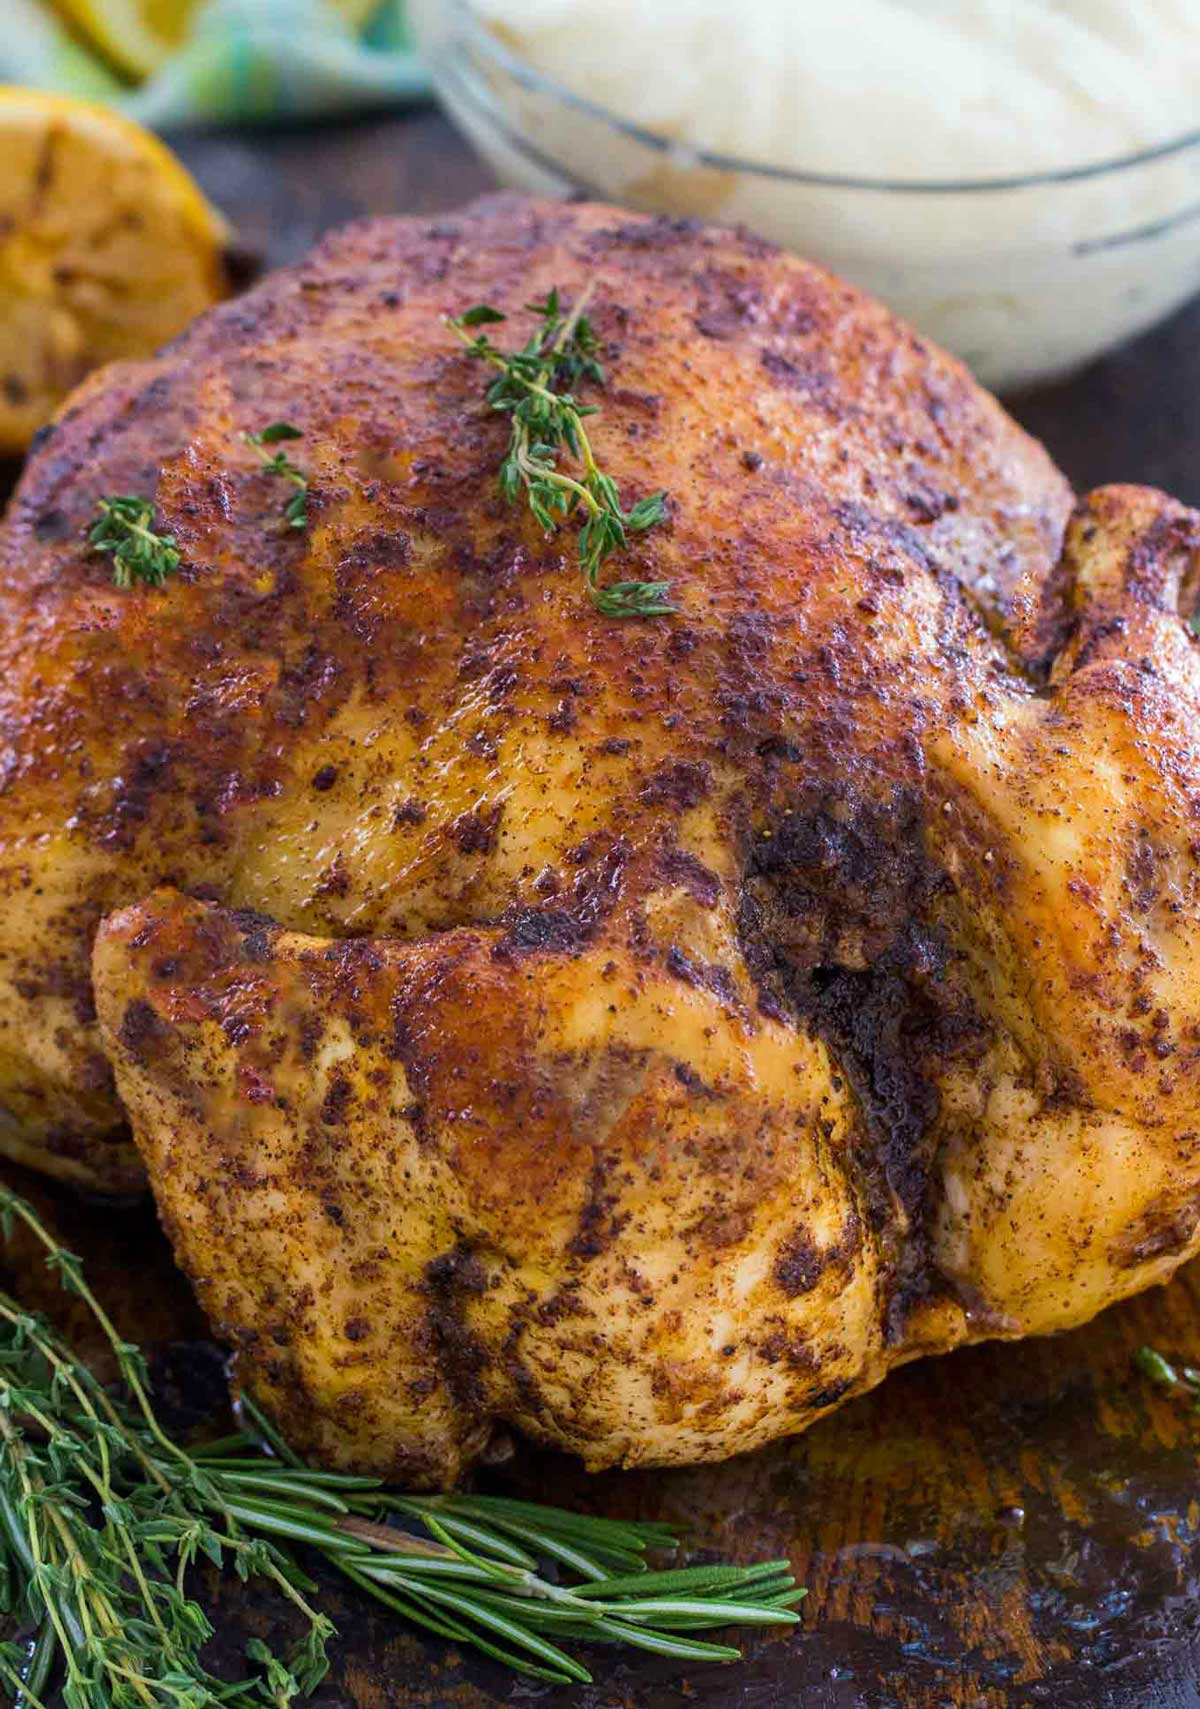 Whole cooked chicken on a board with rosemary sprigs